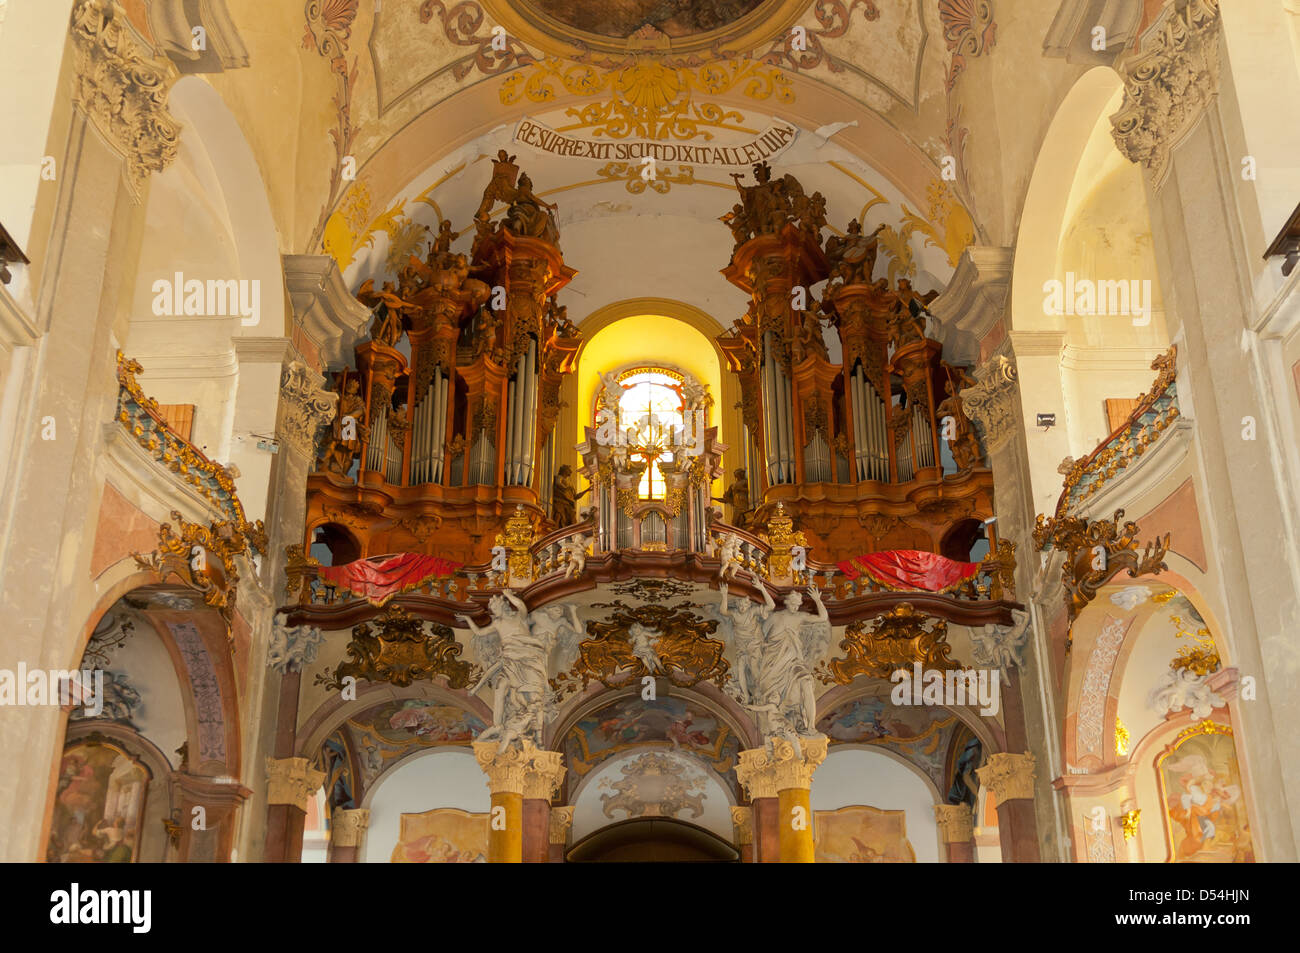 Organ of Church of Our Lady of the Snows, Olomouc, Czech Republic - Stock Image